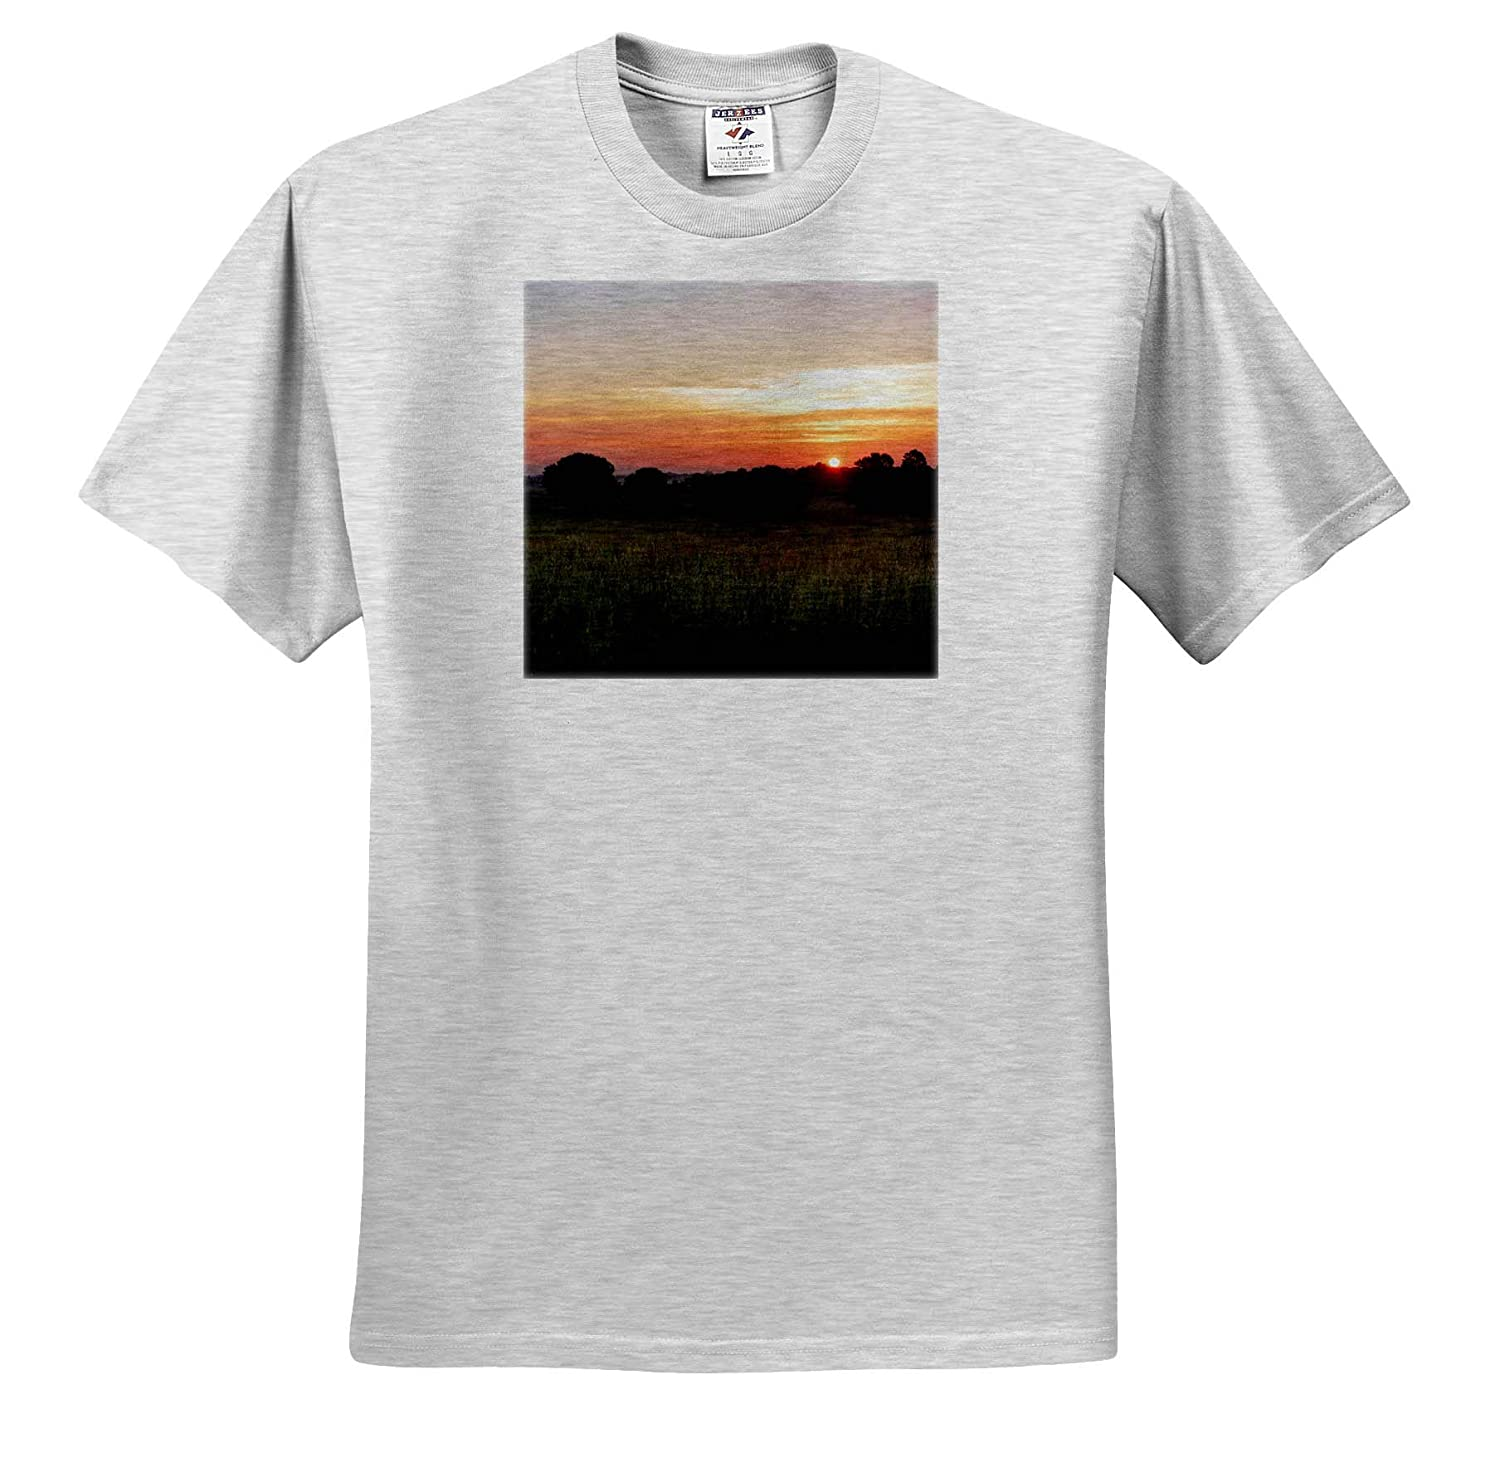 Nature - T-Shirts Photograph of a Beauteous Sunrise in Upstate South Carolina 3dRose Stamp City